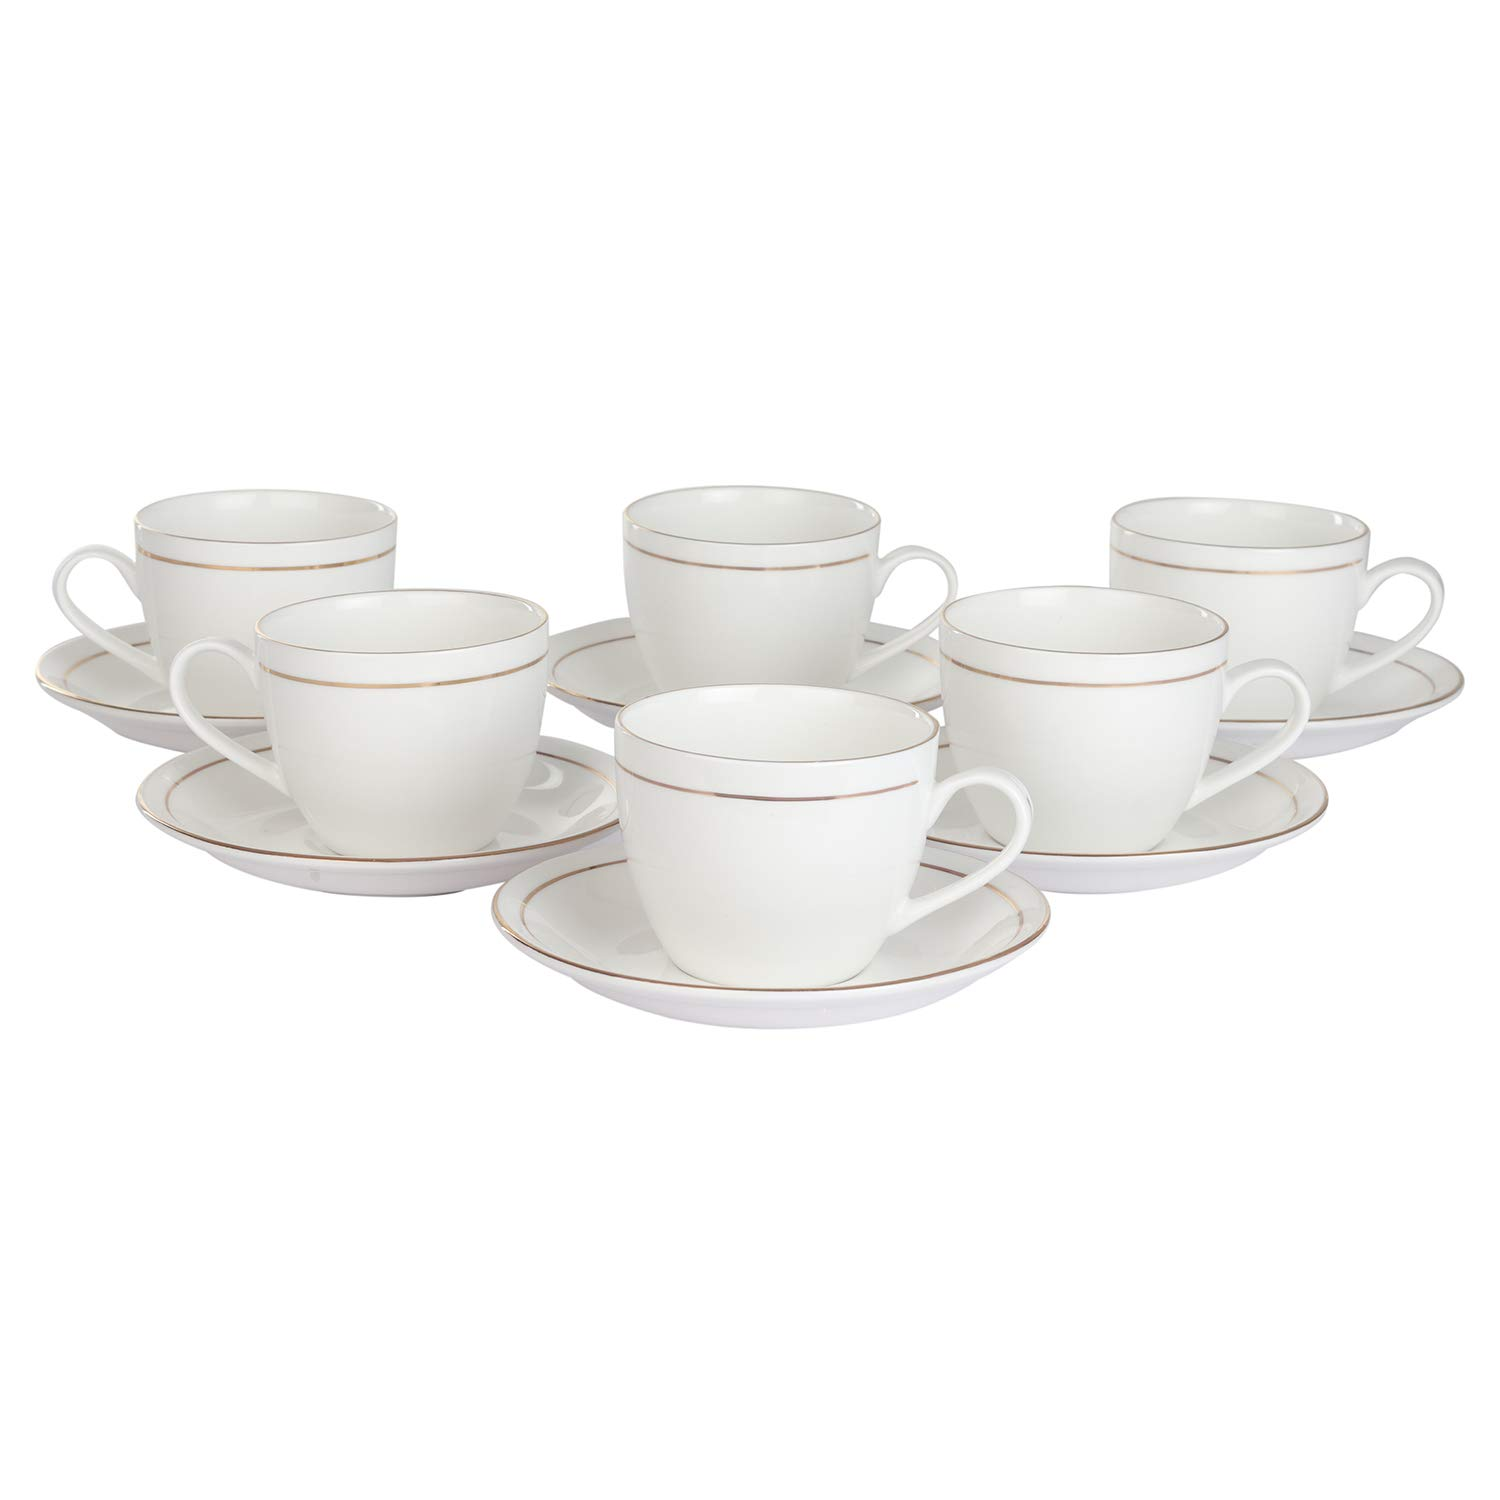 Indian Ceramic Gold Line White Cups & Saucer- 205 ML - 6 Cup & 6 Saucer